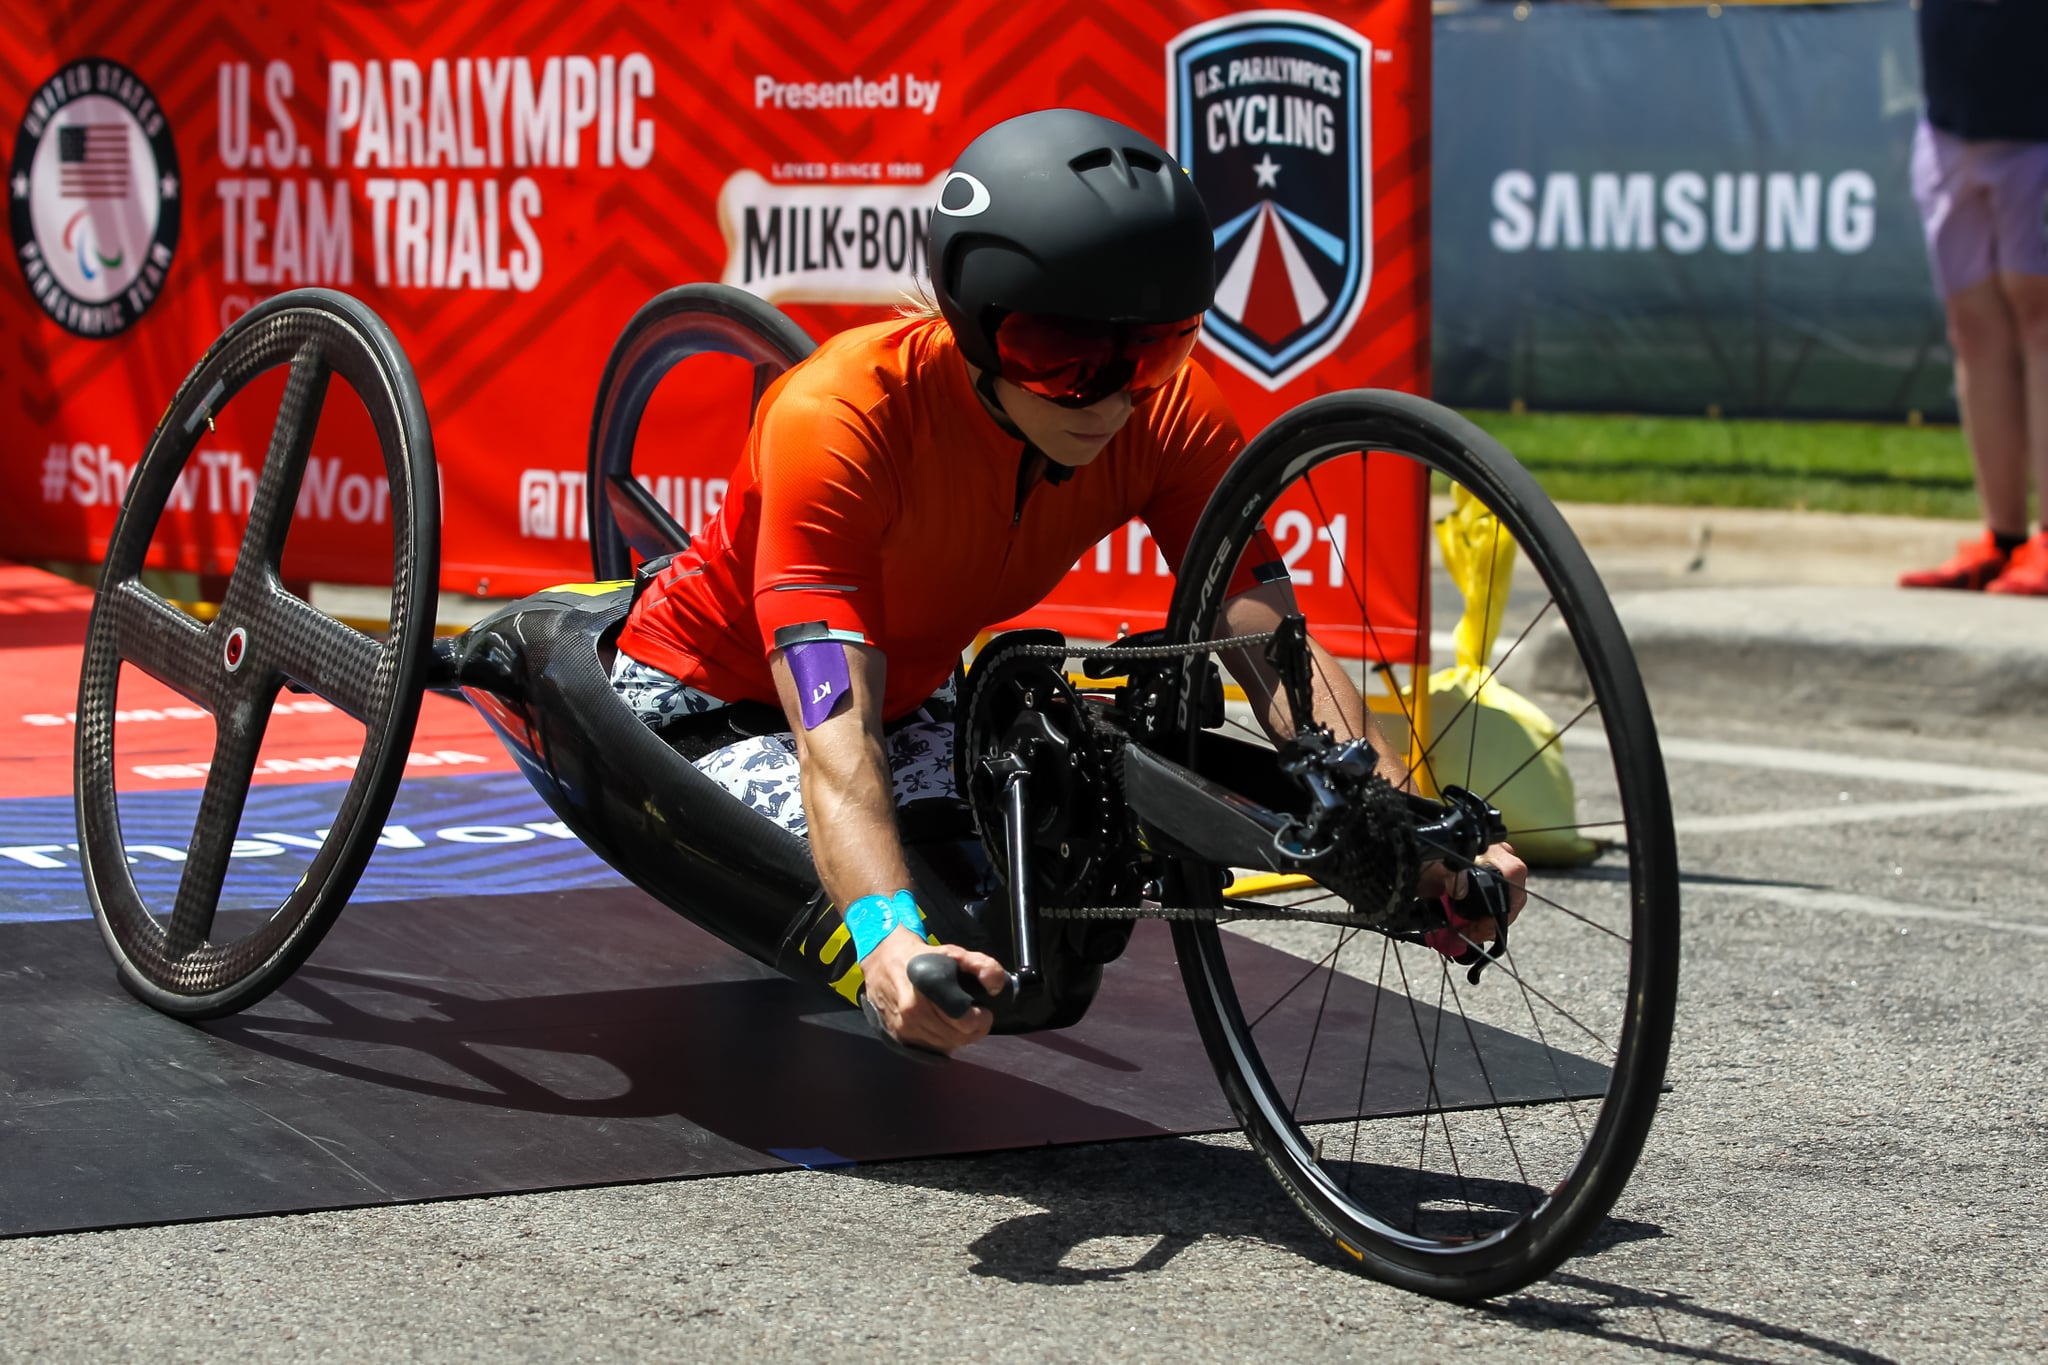 MINNEAPOLIS, MN - JUNE 19: Oksana Masters of the United States competes in the WH4-5 17.0 km Course time trial during the 2021 U.S. Paralympic Trials at Gold Medal Park on June 19, 2021 in Minneapolis, Minnesota. (Photo by David Berding/Getty Images)